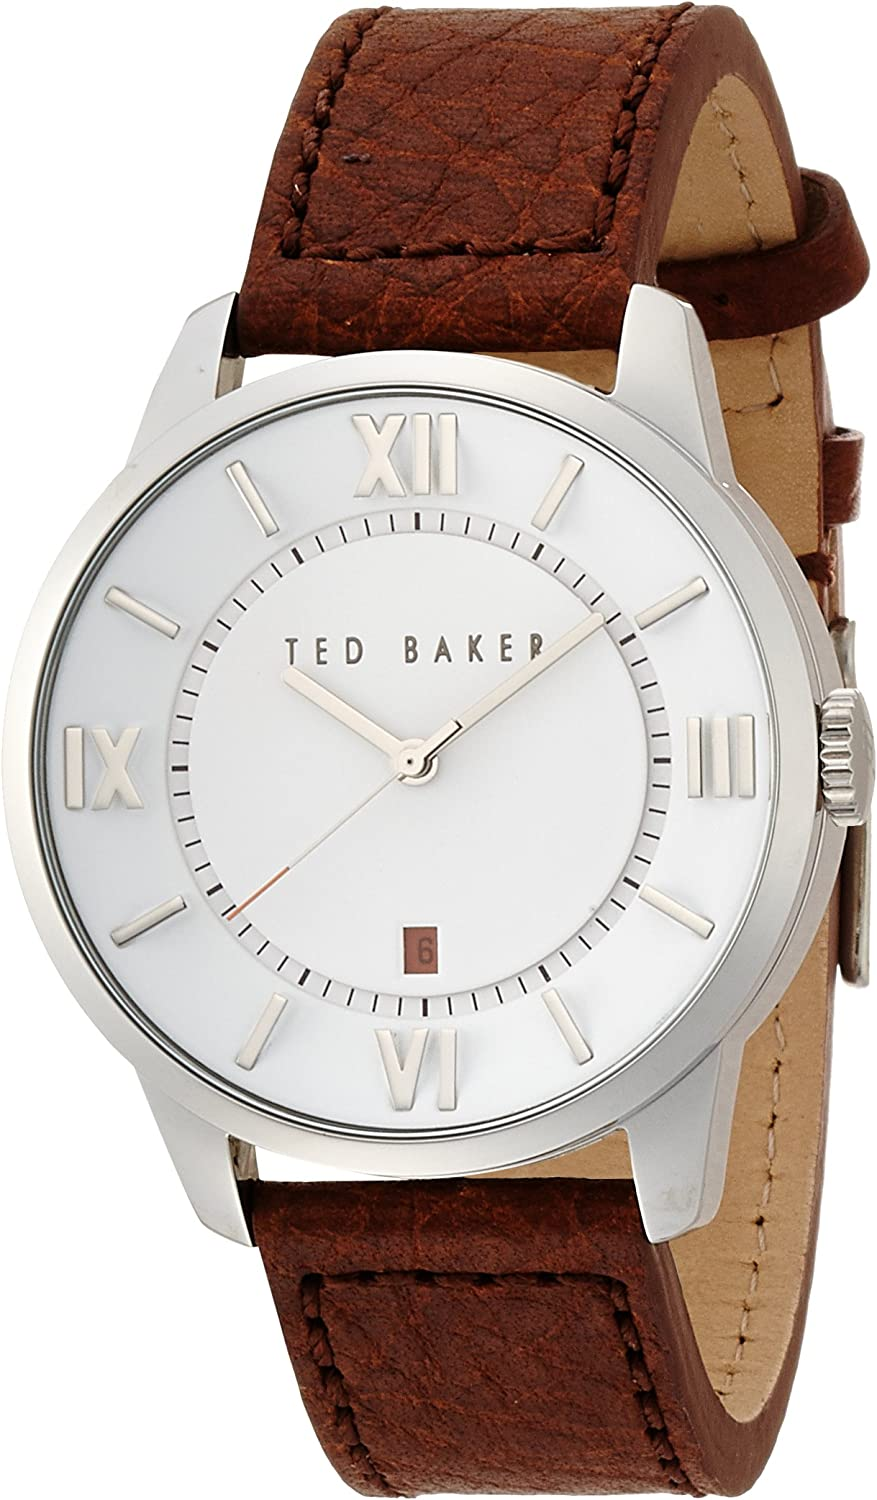 Ted Baker Three-Hand Leather - Brown Men's watch #TE1118